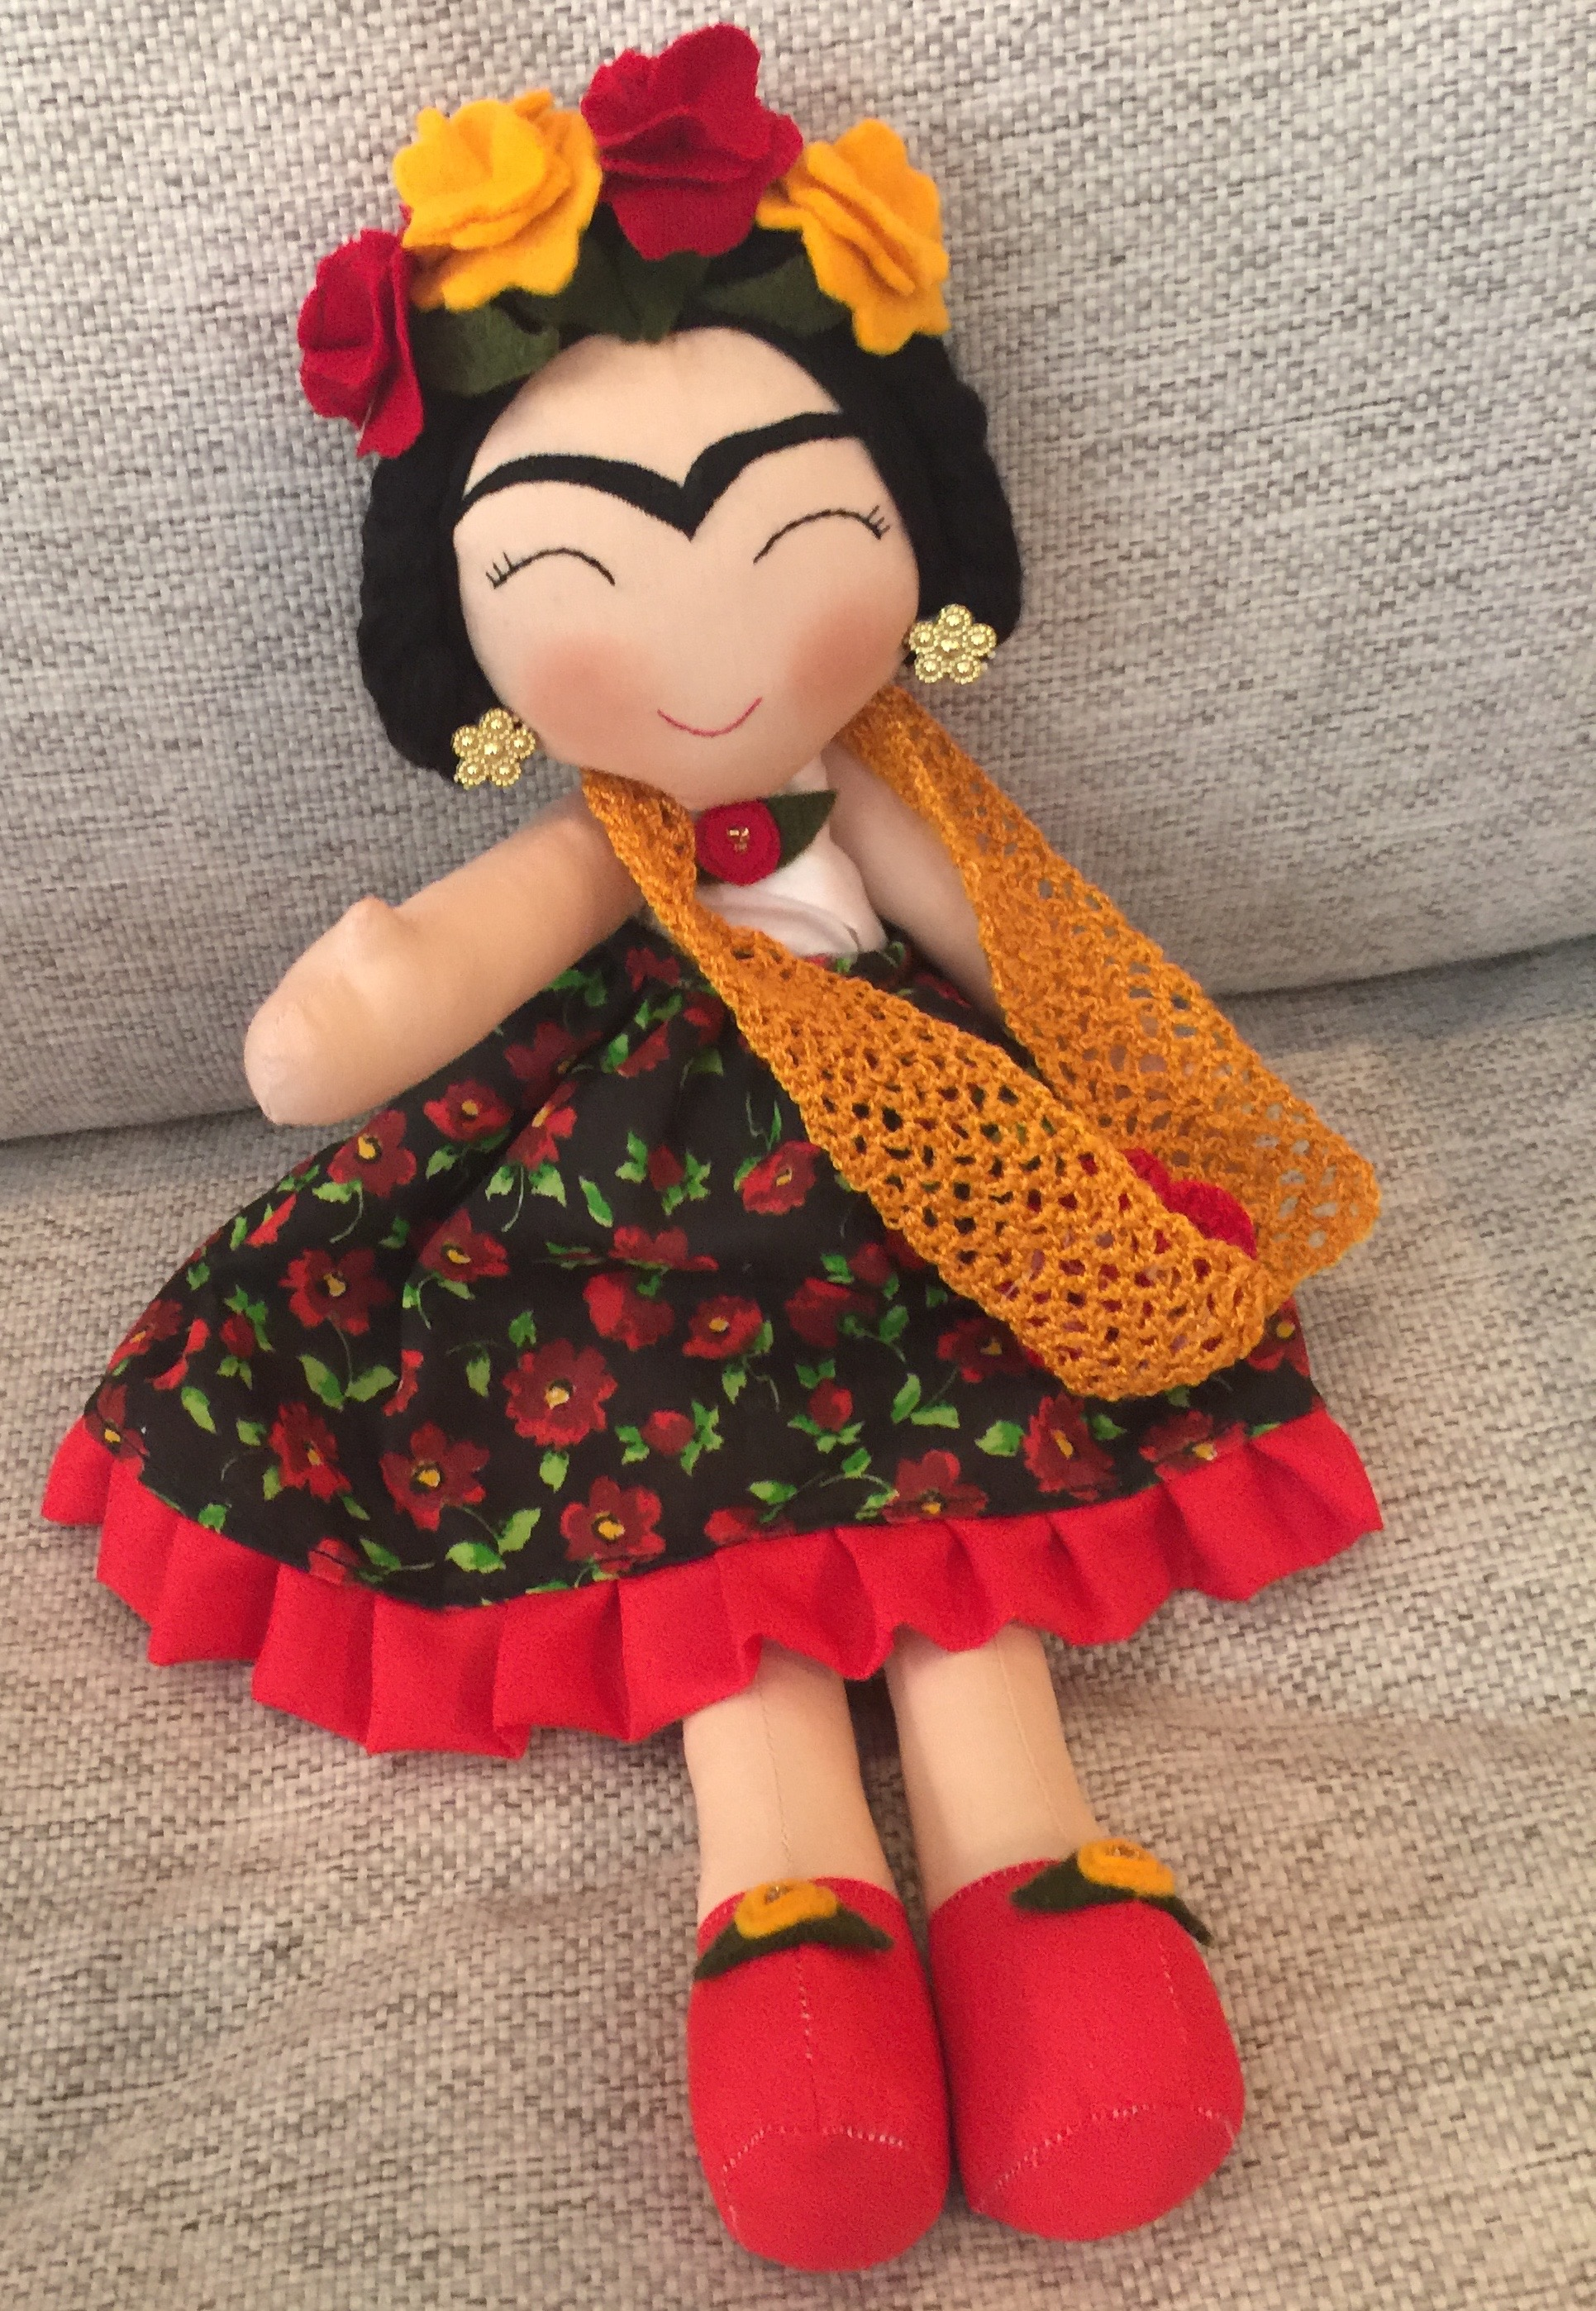 Found a little Frida at a cute shop that sold high end textiles from around Mexico. Pretty adorbs!